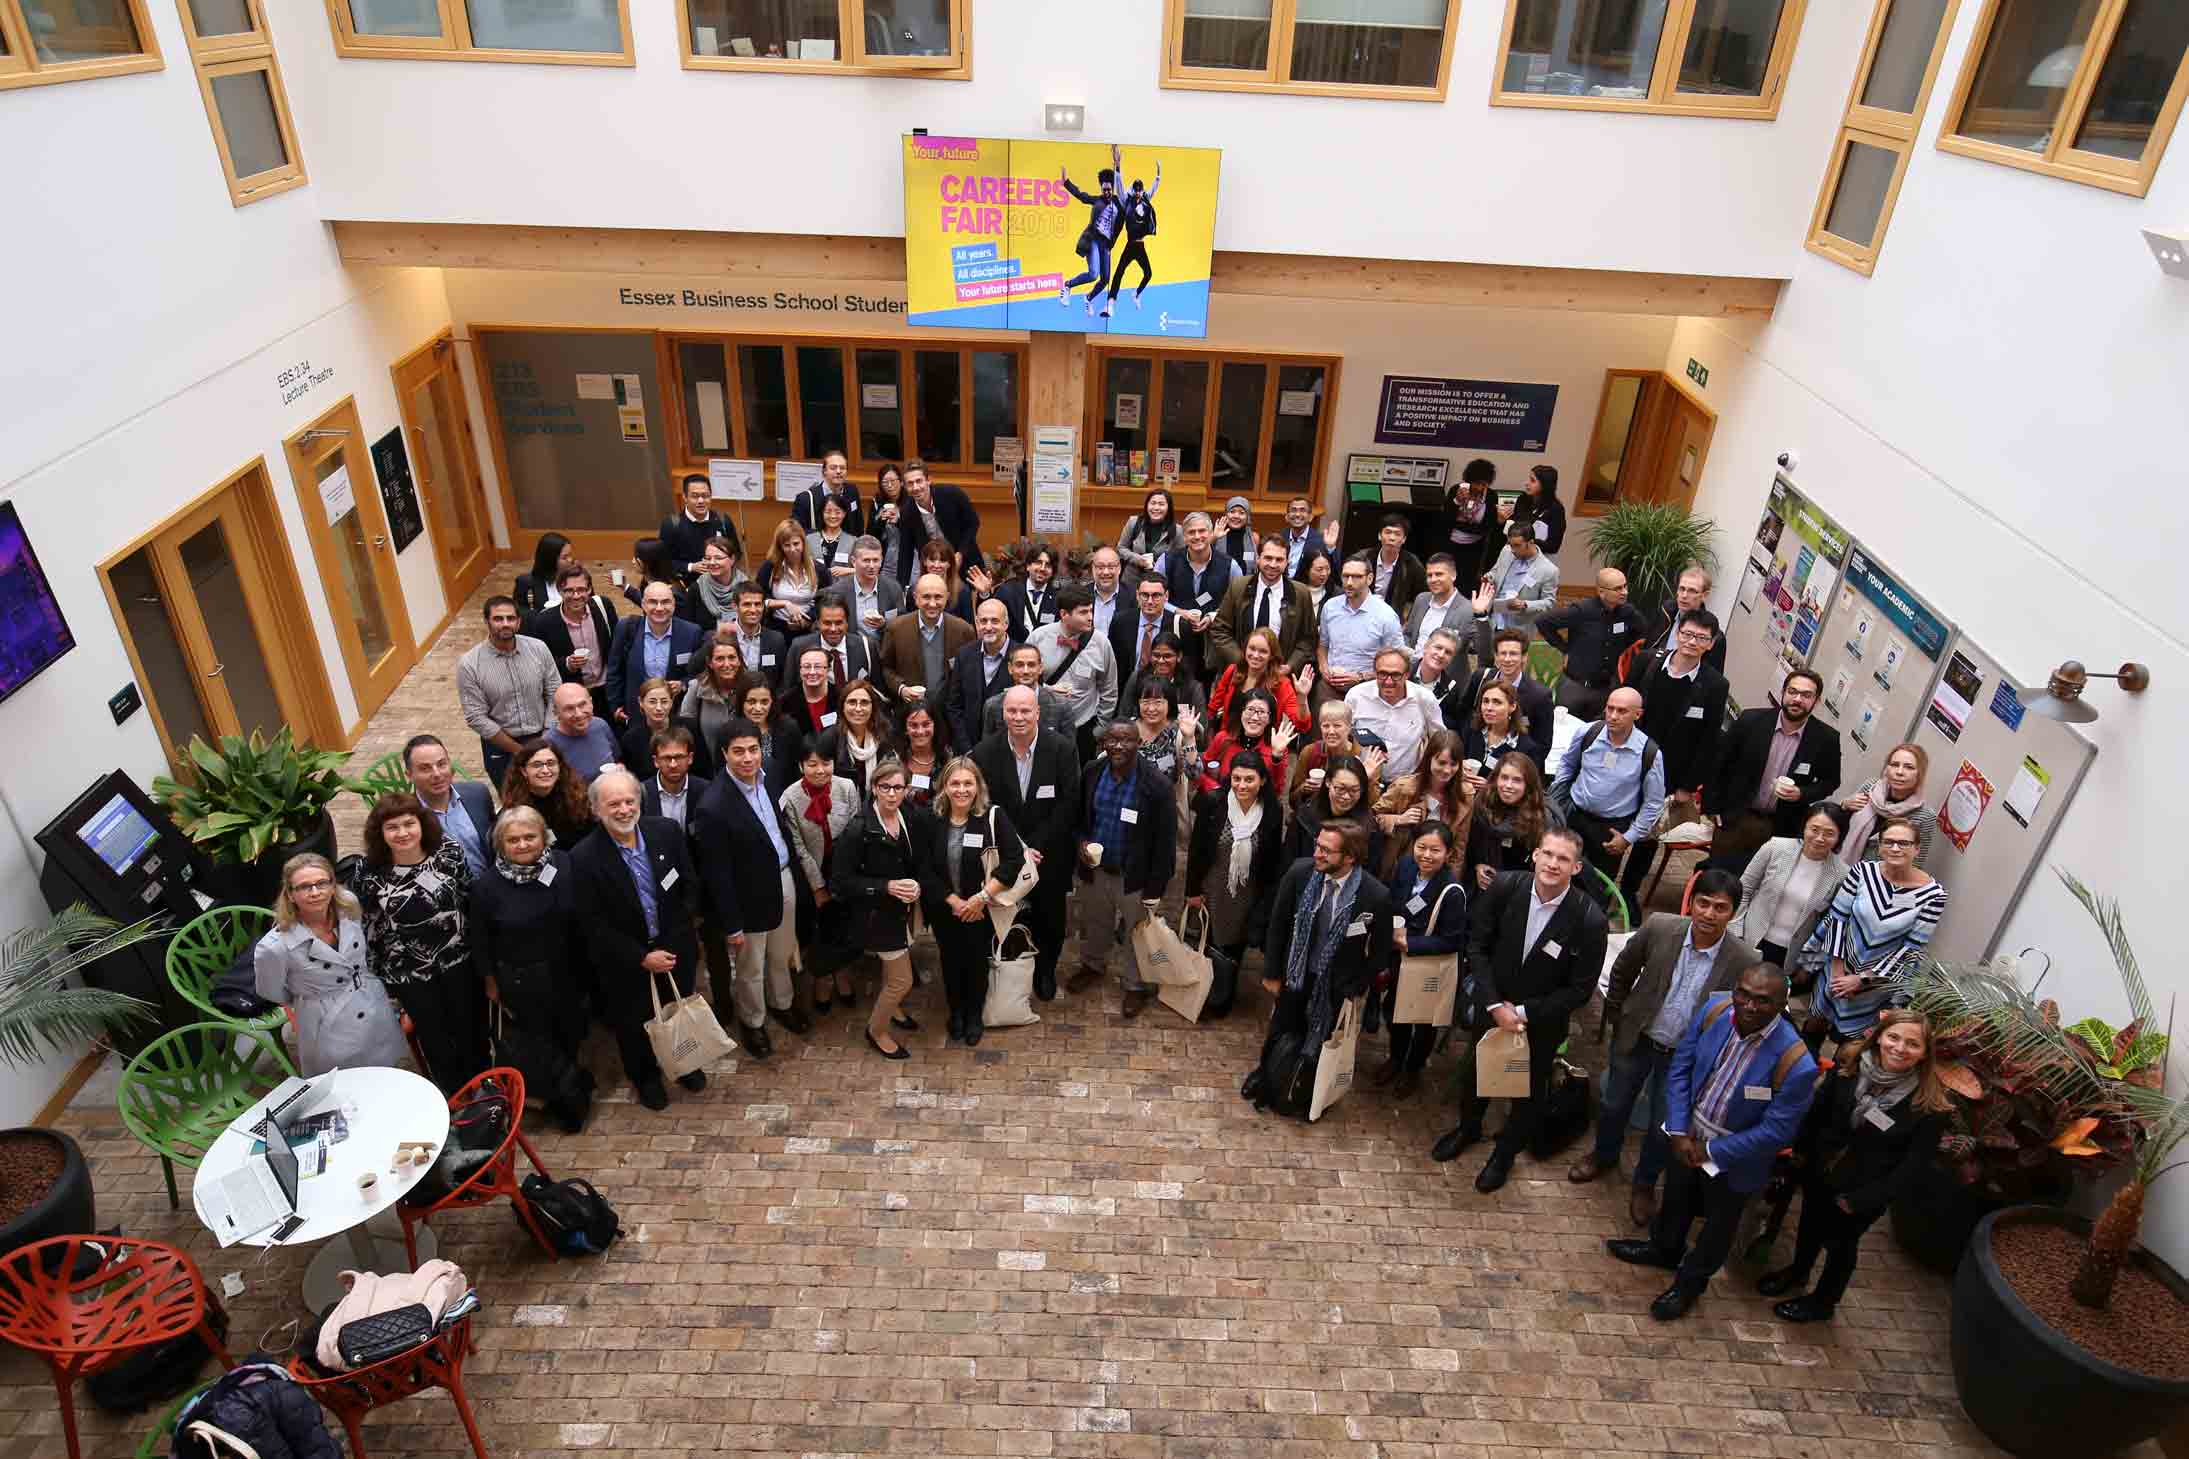 5th Annual ICGS Conference participants at the University of Essex, Essex Business School.